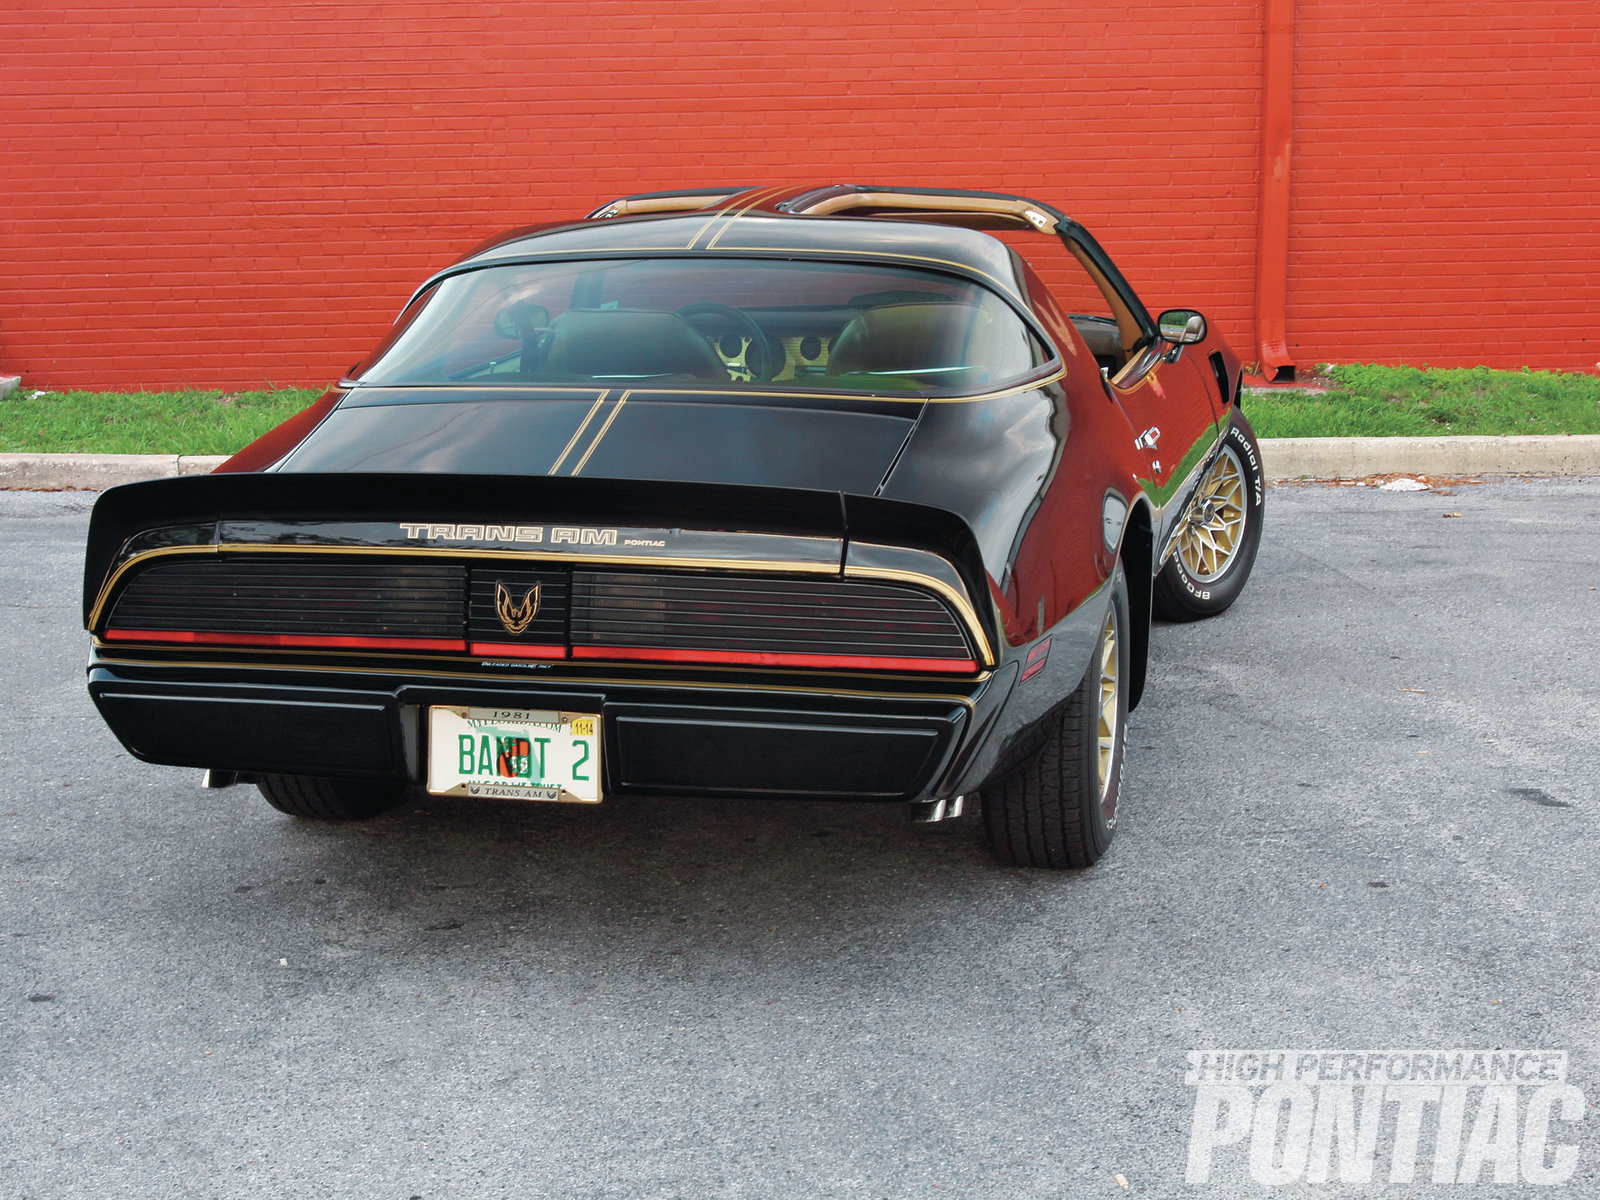 The Firebird graphic on the fuel-filler door, which identifies '81 model-year Birds, was replaced on this T/A with a Third-Gen version. Factory blacked-out taillamps give late Second-Gen Formulas and Trans Ams a custom look.